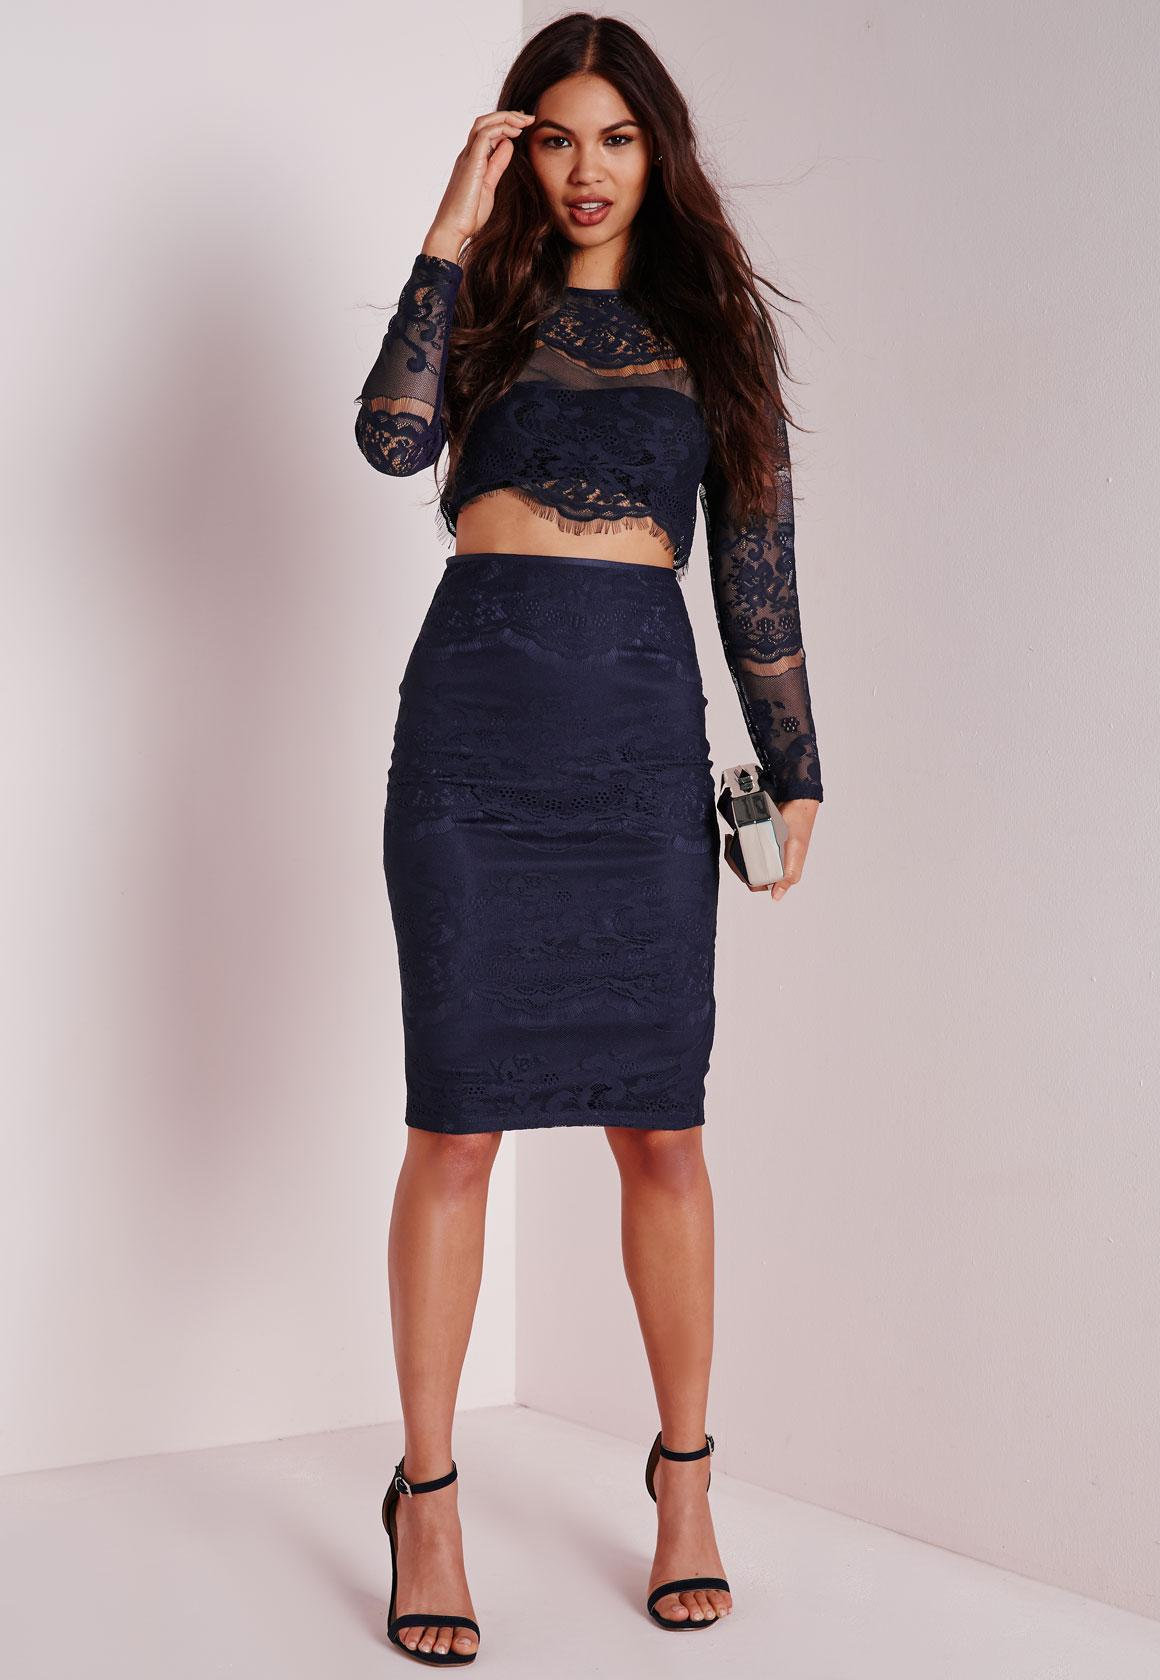 Lace Midi Skirt Navy - Skirts - Midi Skirts - Missguided